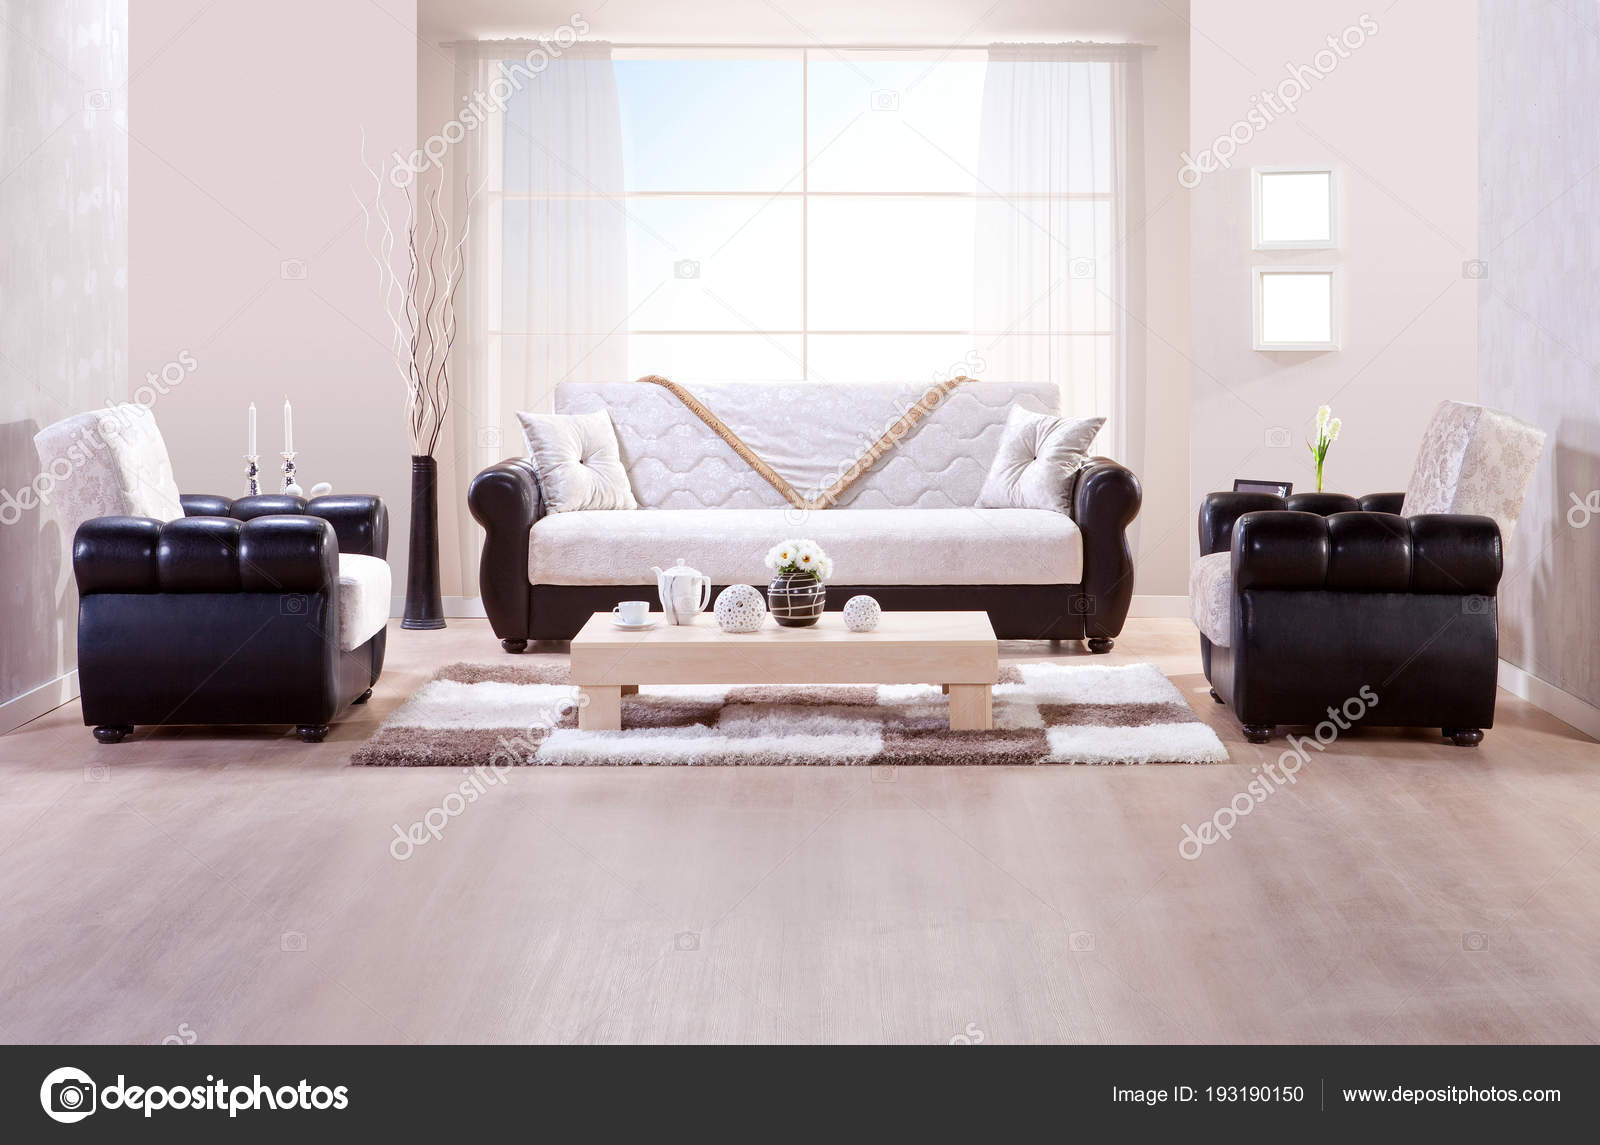 Sofa Set Images Free Download Sofa Set Interior Stock Photo Saaras 193190150